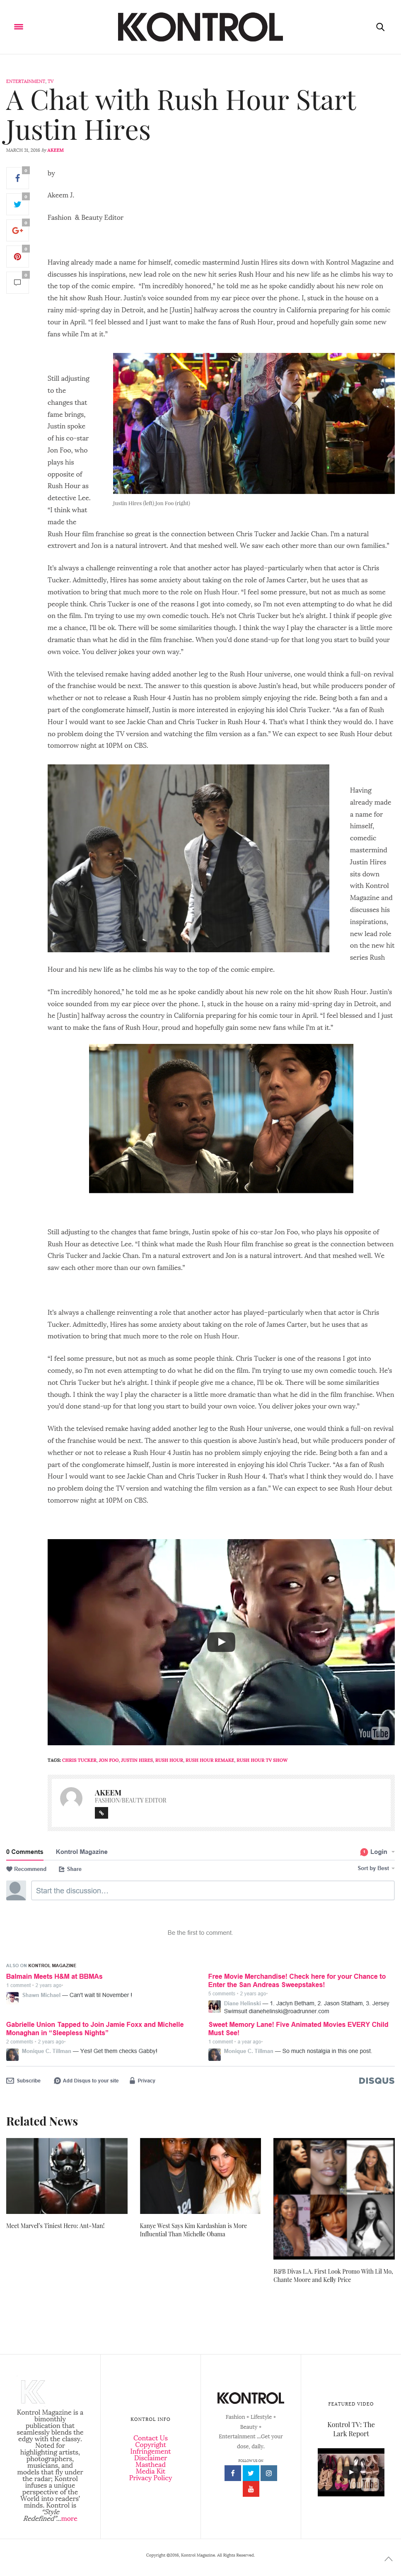 Justin Hires Interview--Rush Hour--Kontrol Mag March 2016